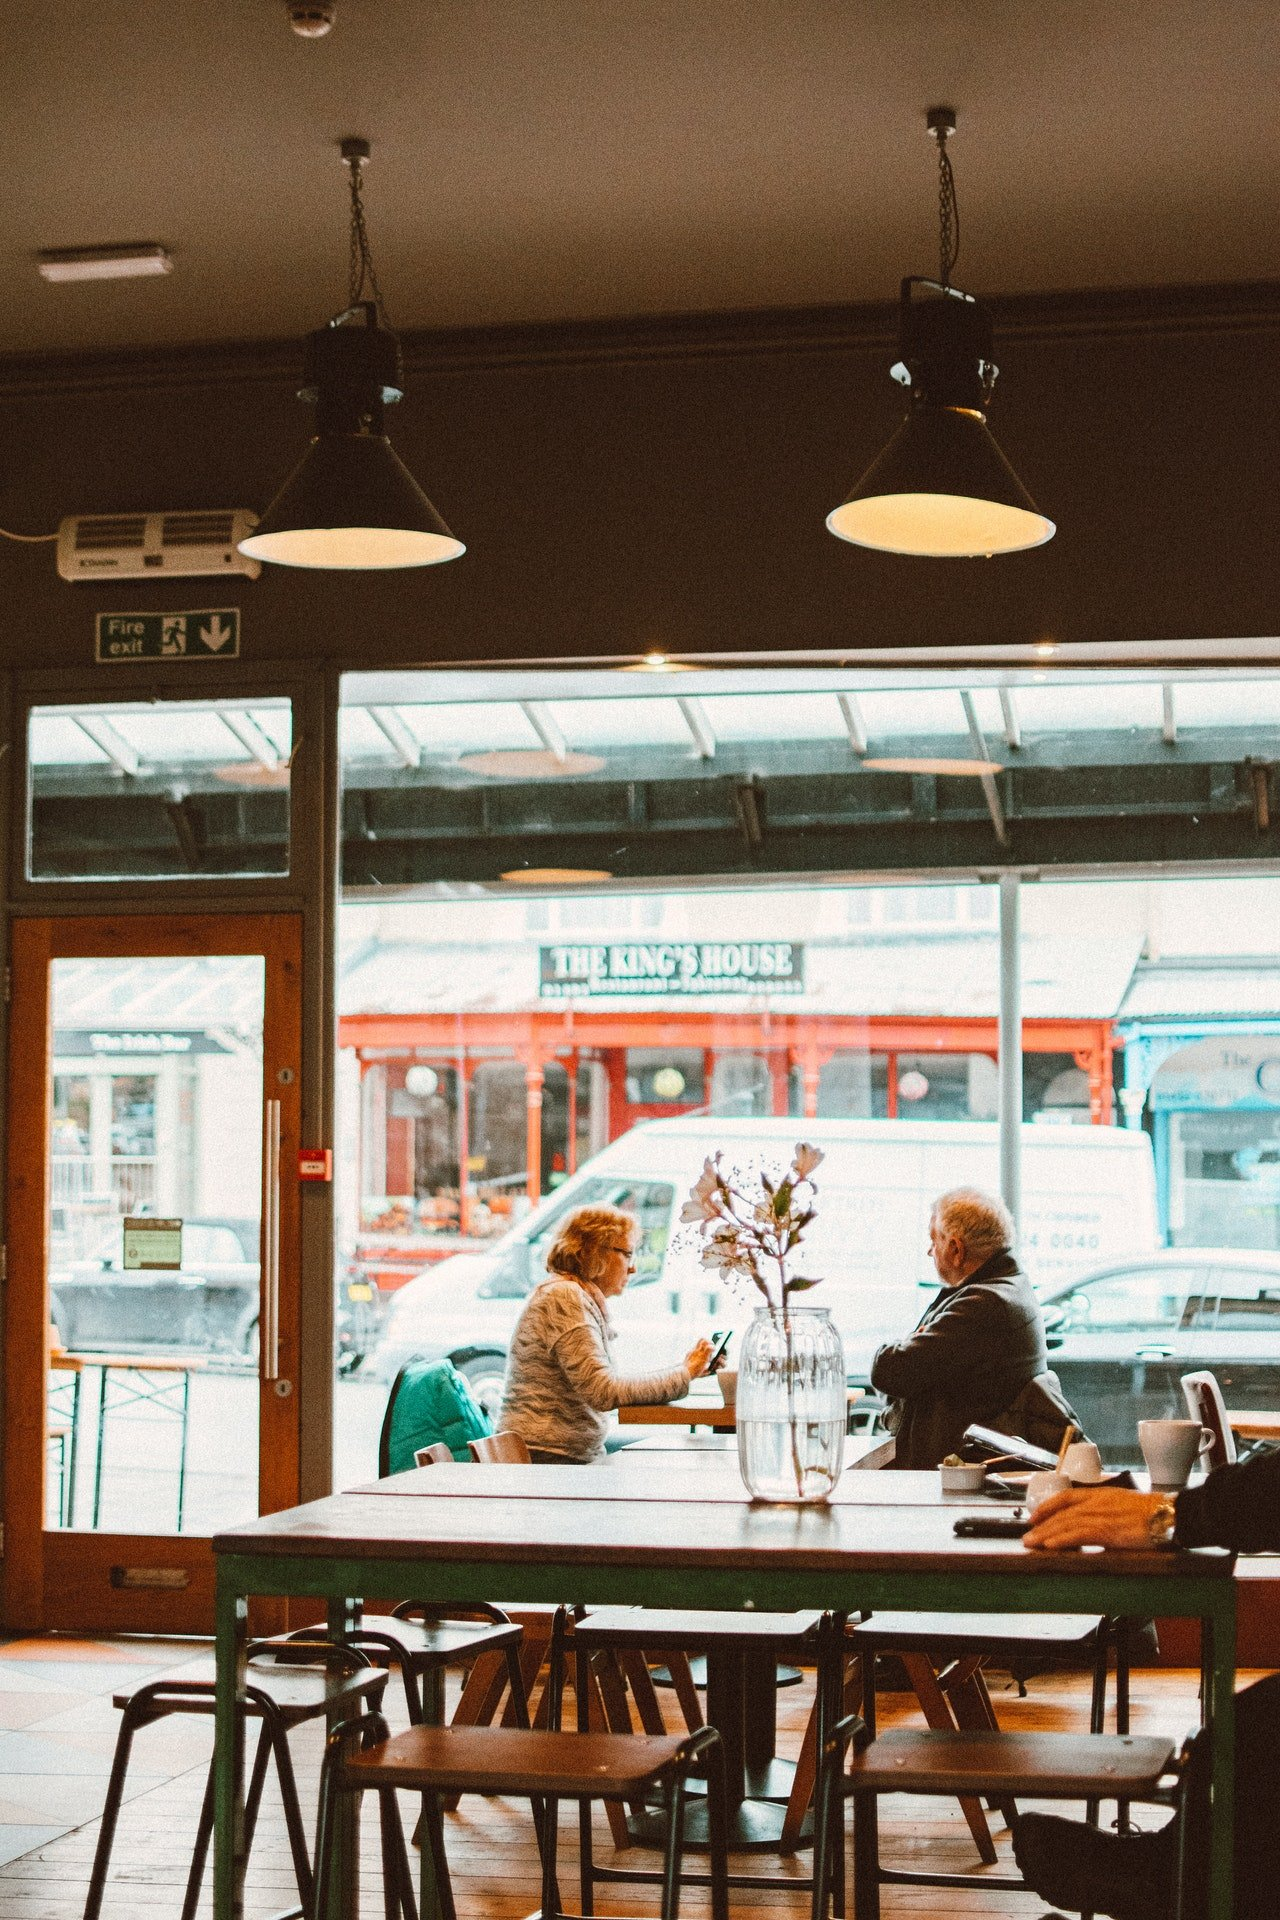 An elderly couple sitting by the window of a restaurant   Source: Pexels